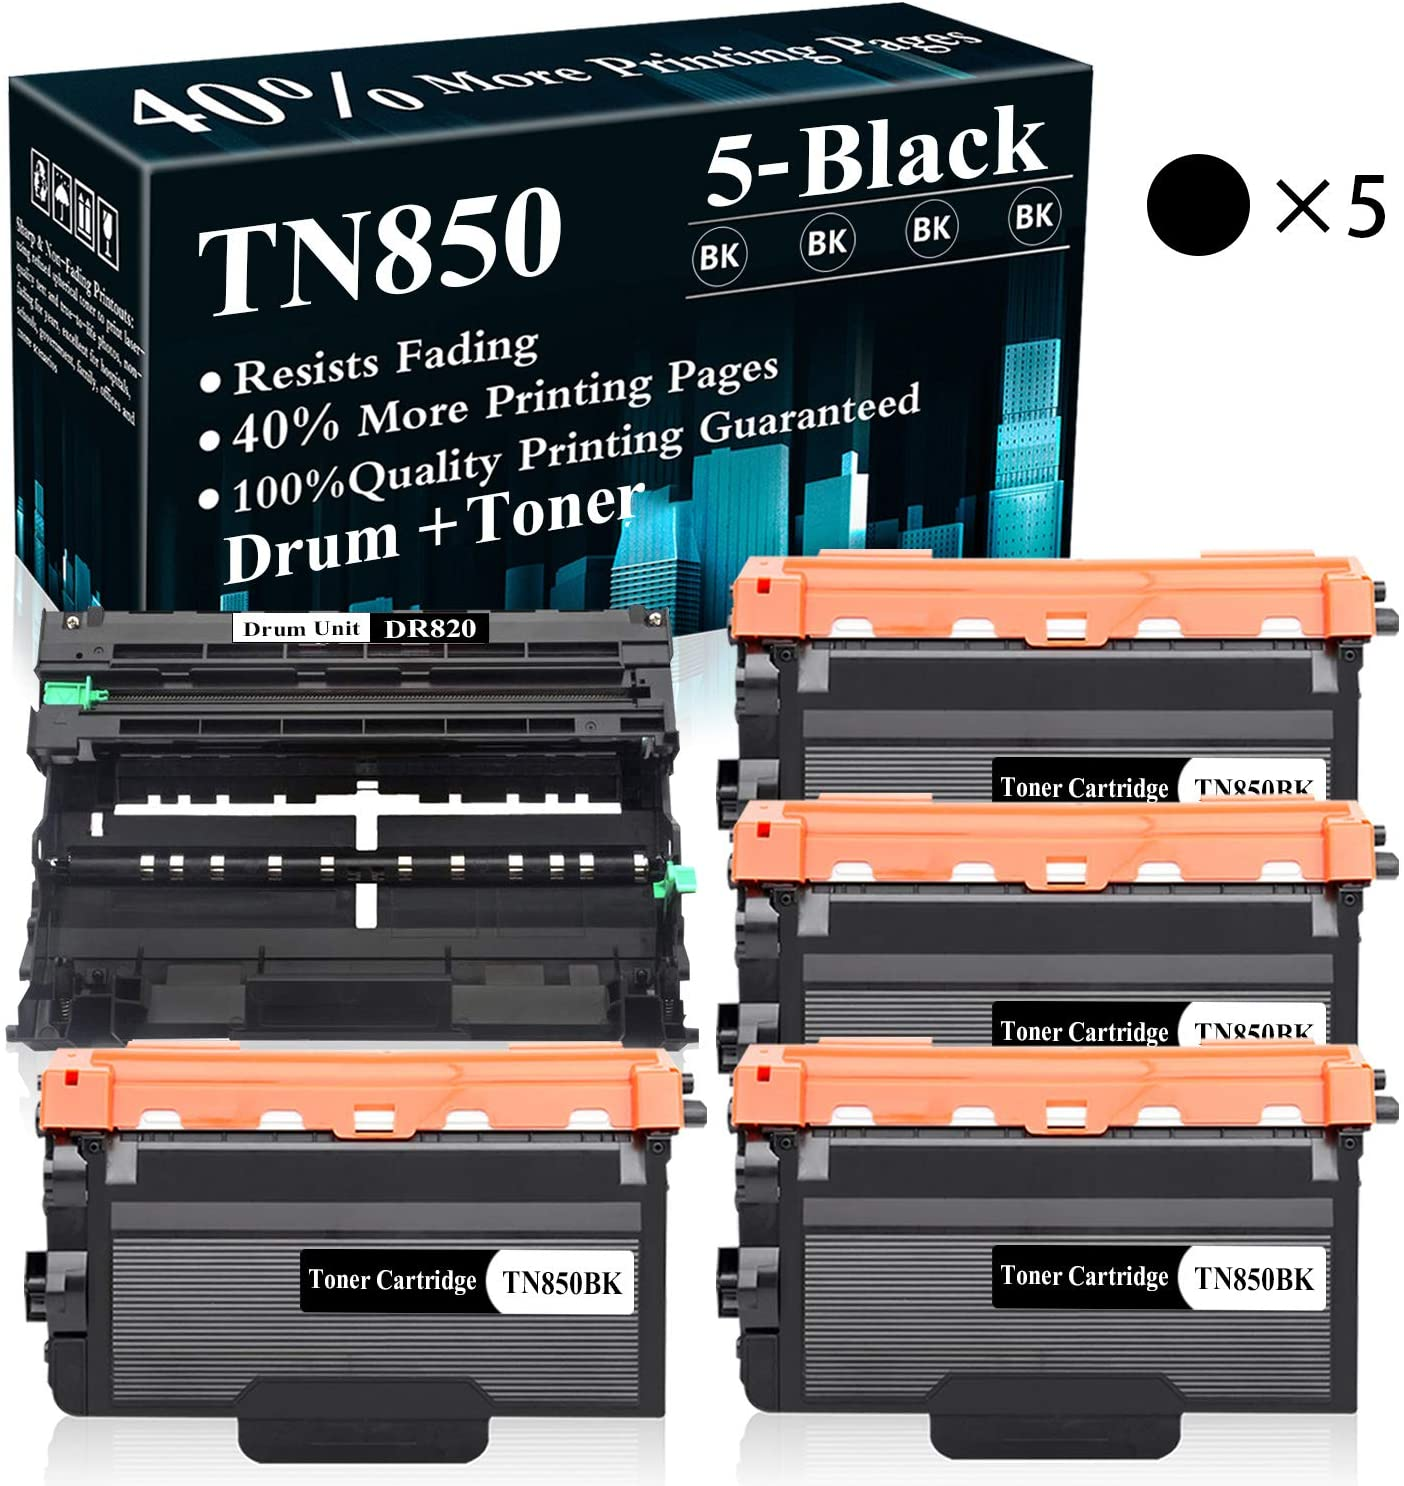 5 Pack (1Drum+4BK) DR820 Drum Unit TN850 Toner Cartridge Replacement for Brother DCP-L5500DN L5600DN L6700DW L6750DW L5700DW L5900DW L6800DW L6200DW L6250DW L5000D L5200DW Printer,Sold by TopInk